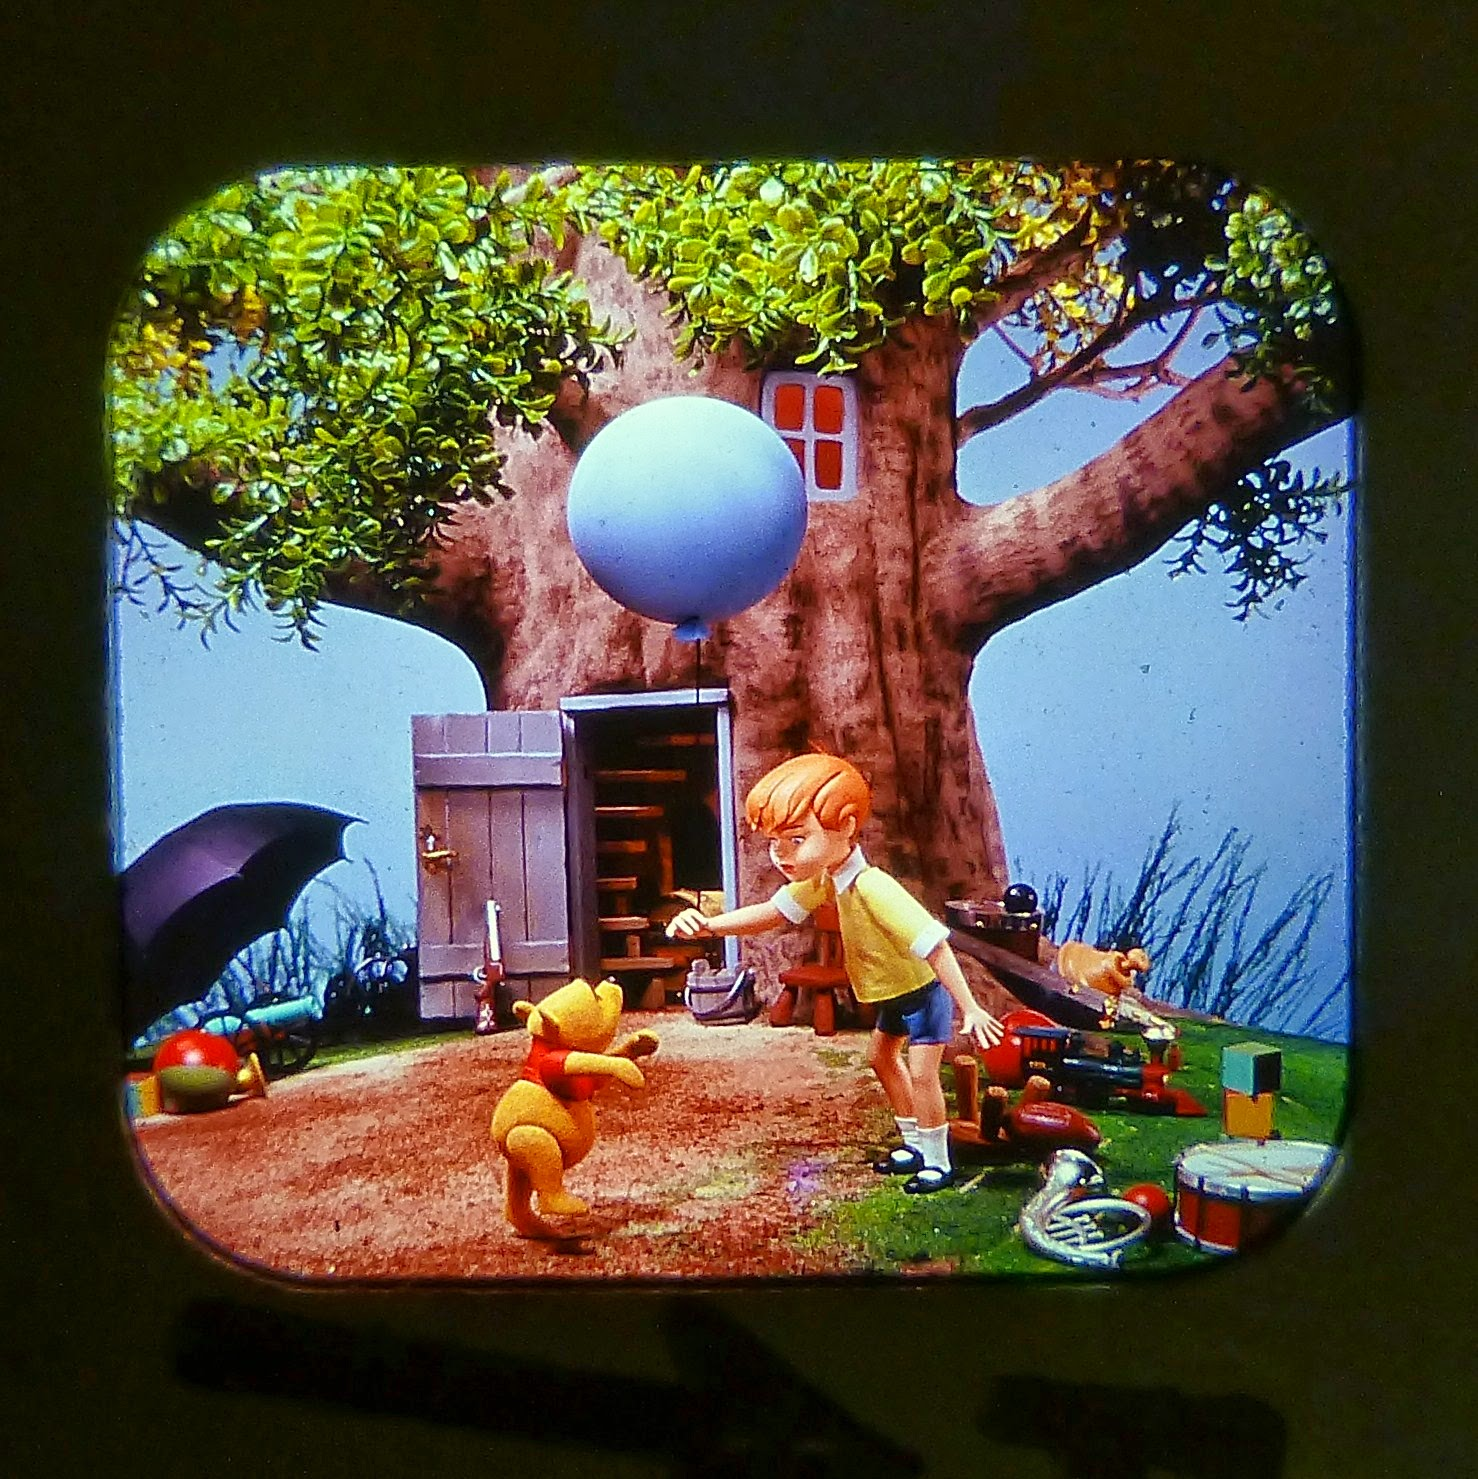 WINNIE THE POOH AND THE HONEY TREE VIEW MASTER SCANS